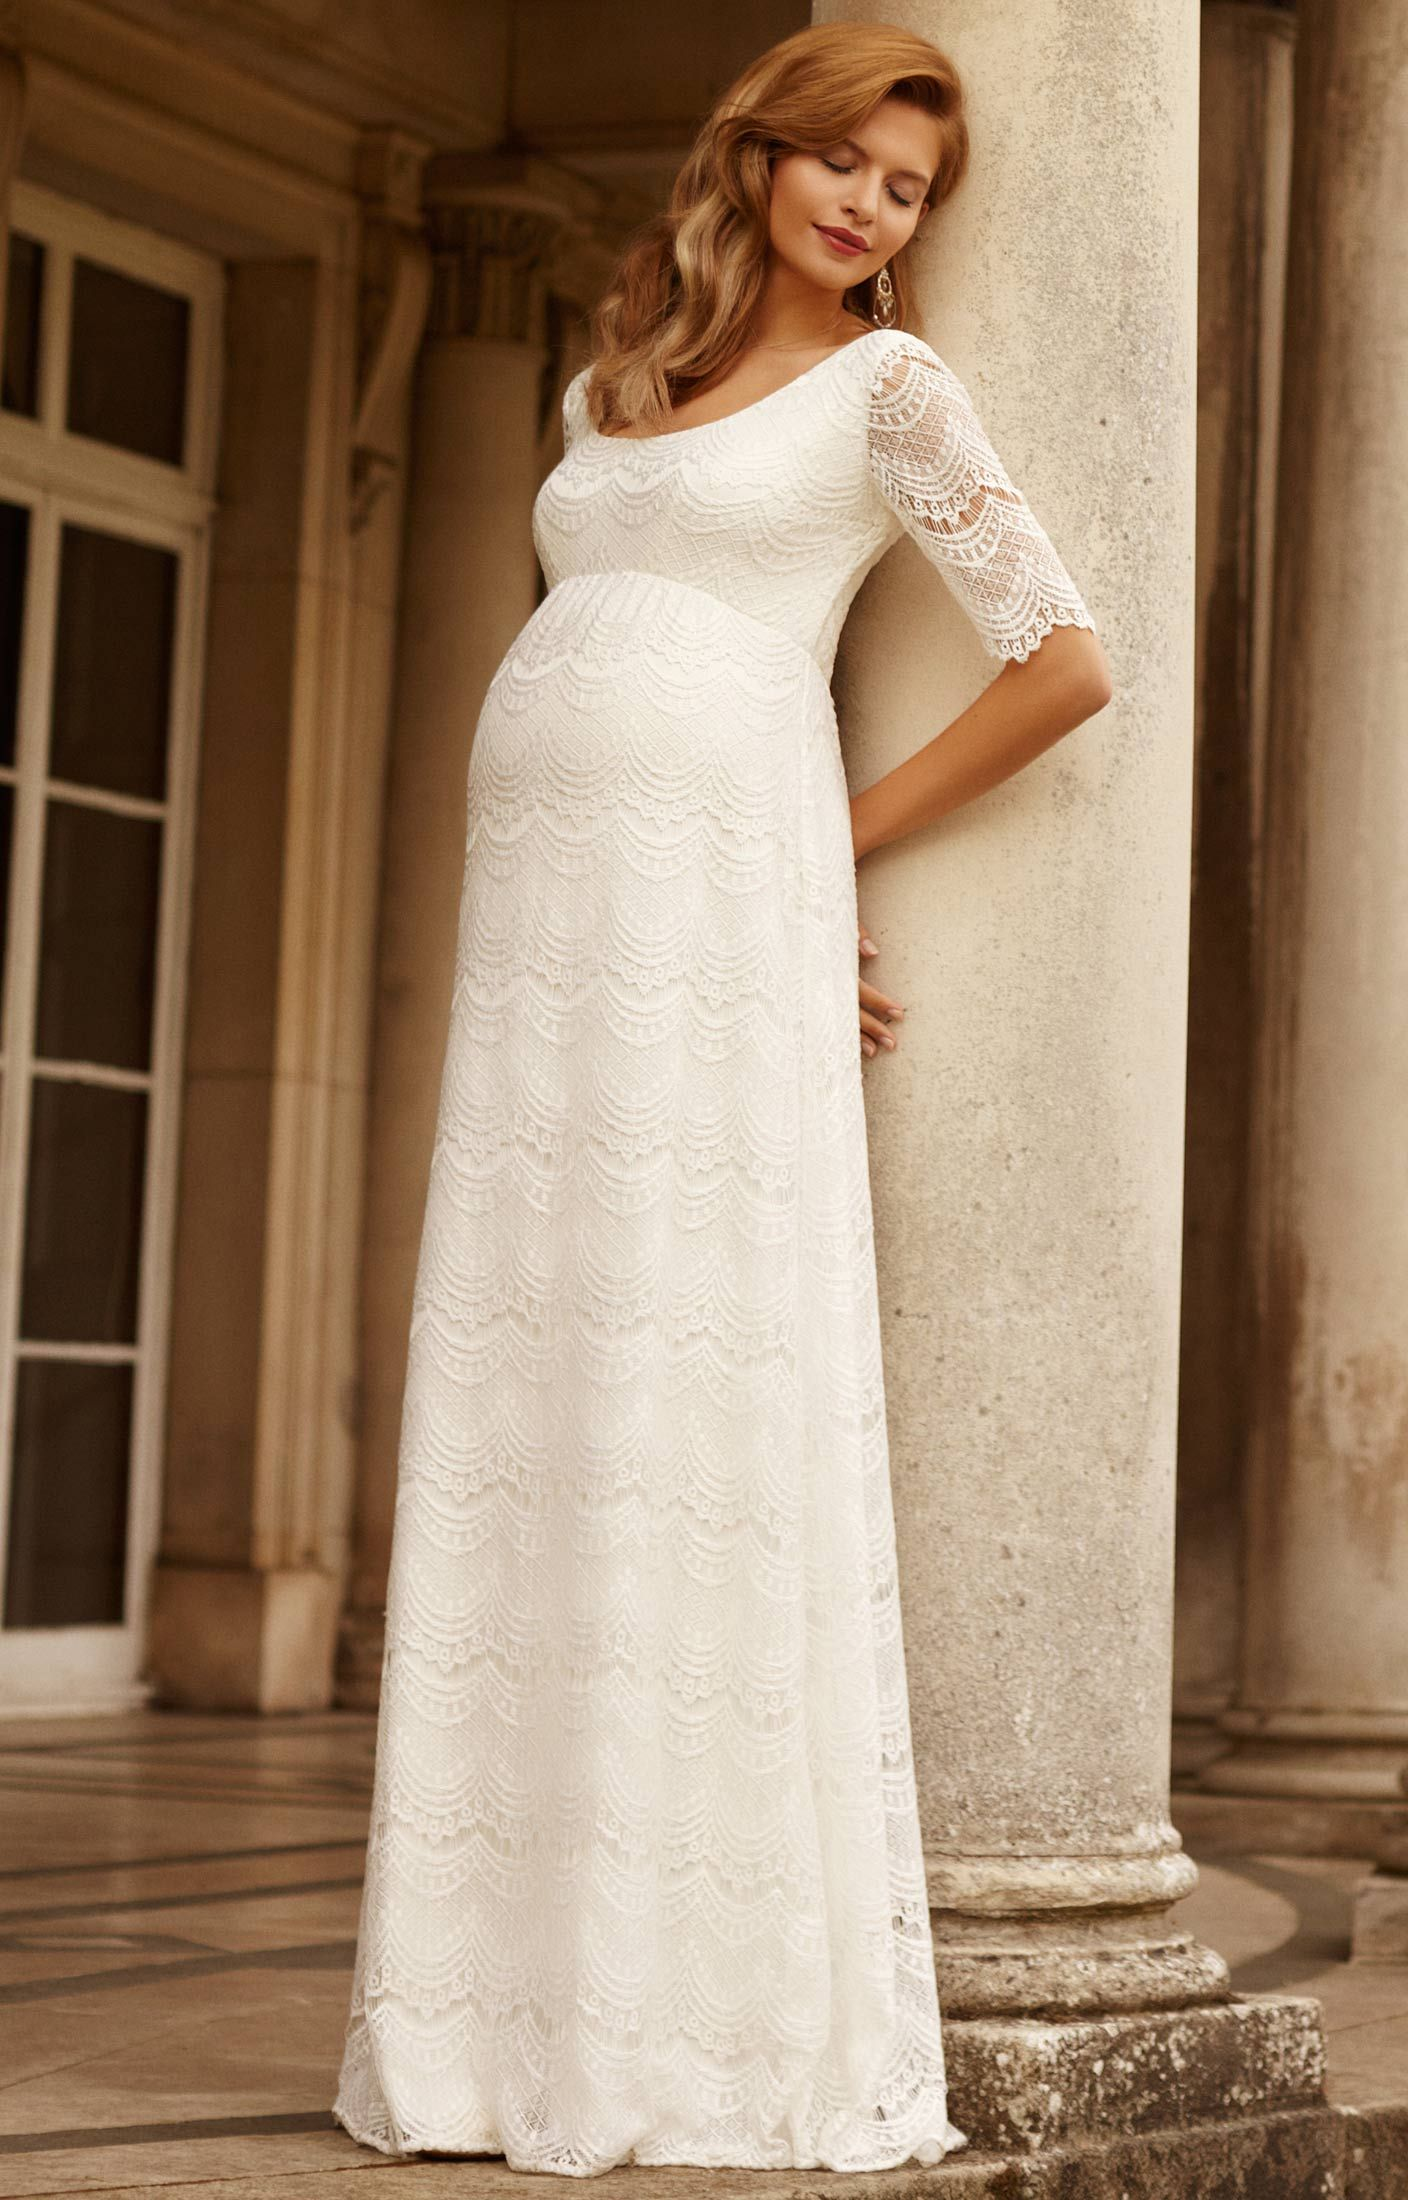 89c163044130 Verona Maternity Wedding Gown (Ivory) - Maternity Wedding Dresses, Evening  Wear and Party Clothes by Tiffany Rose US